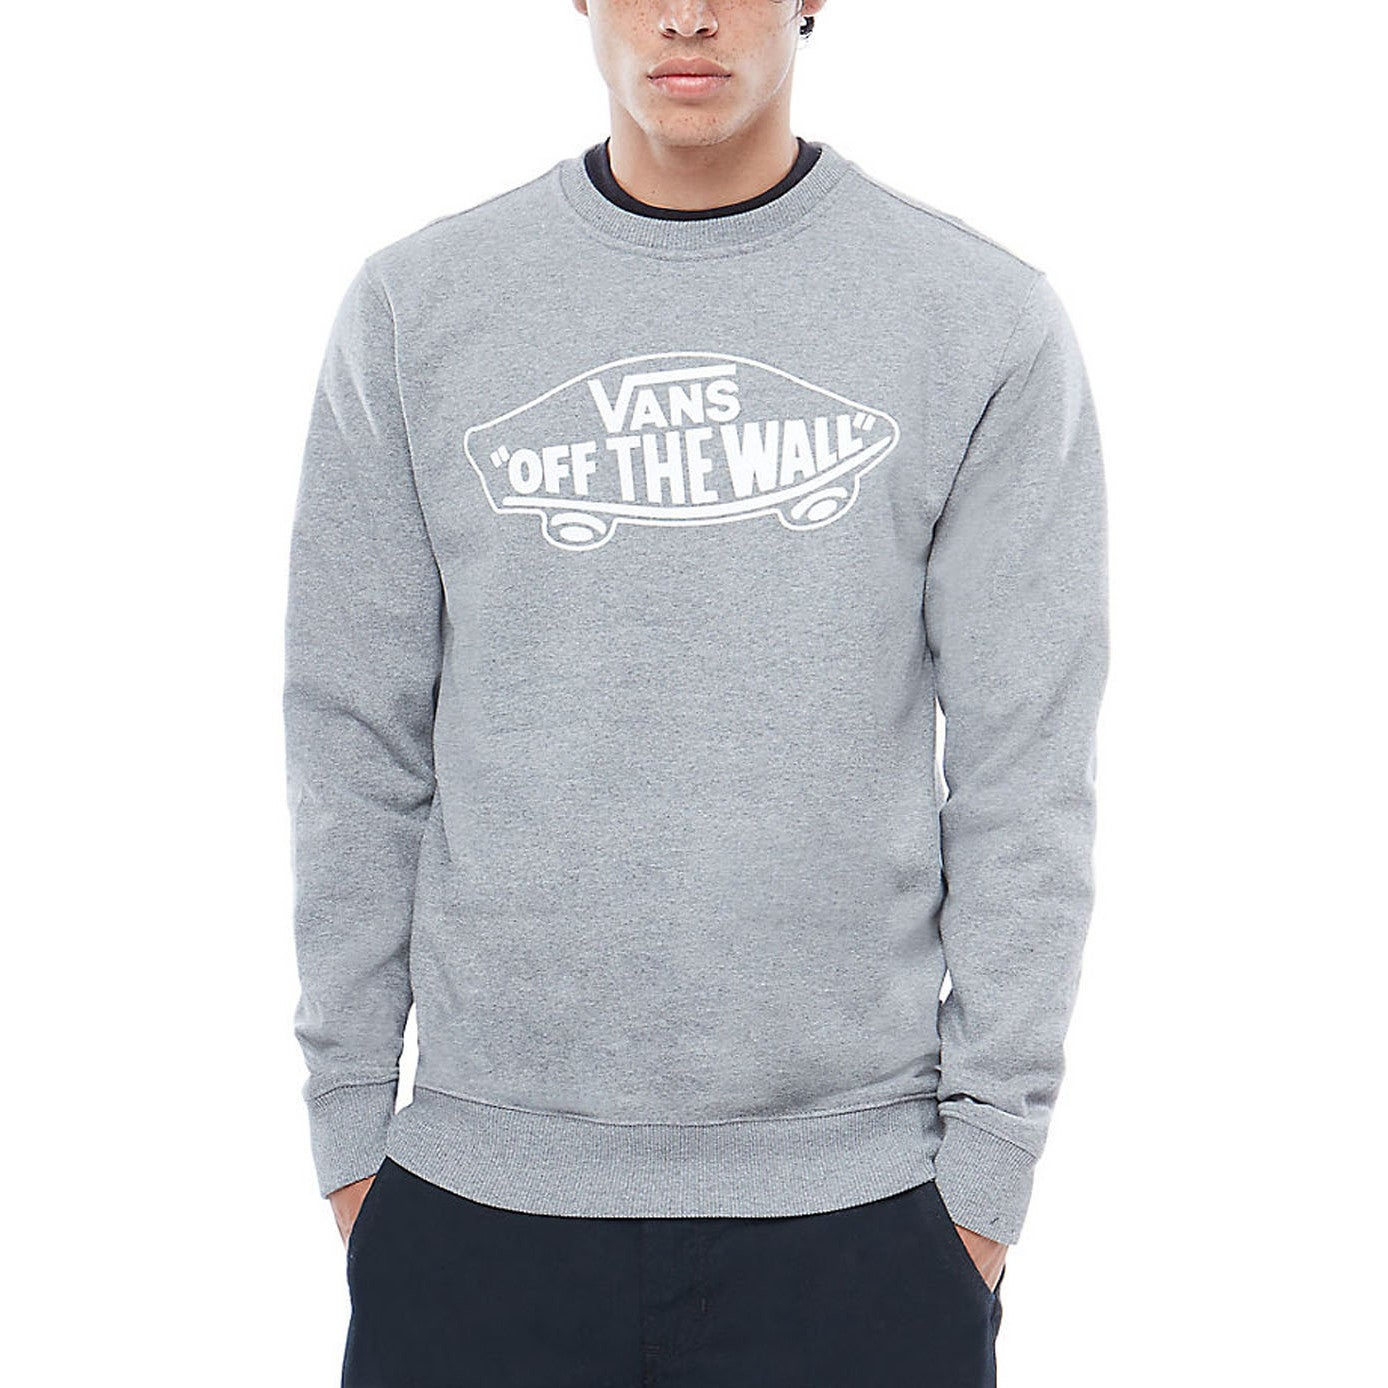 Vans Off The Wall Crew  Herren Jumper - Cement Heather Weiß Outline All Größes